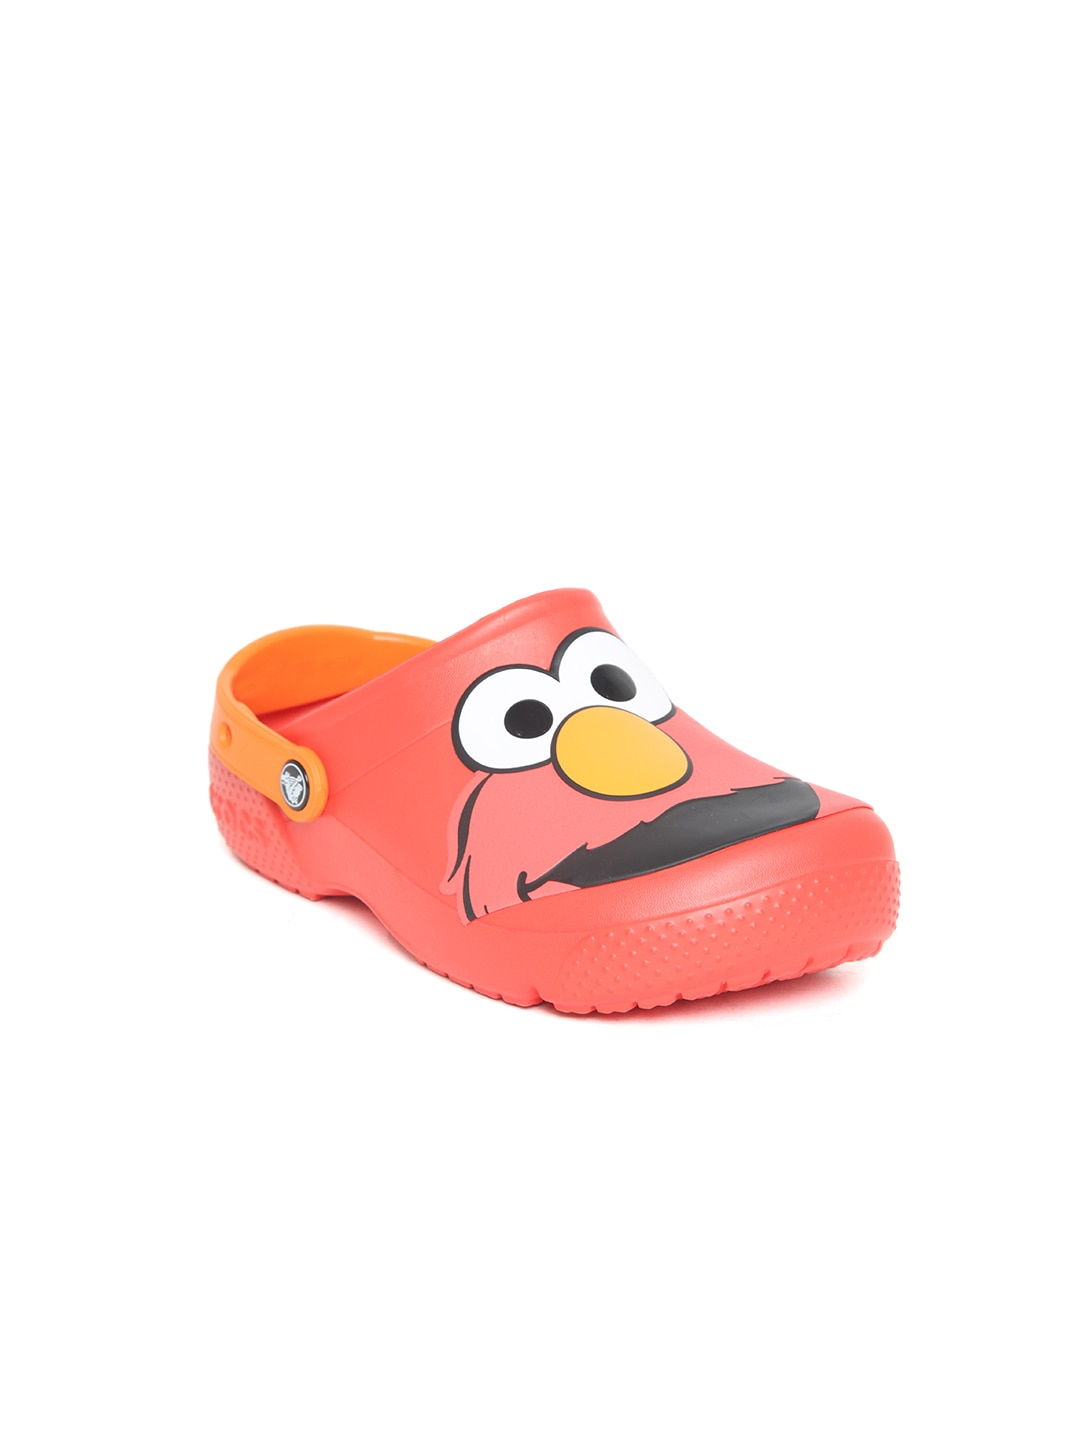 Crocs Kids Red Elmo Print Clogs image